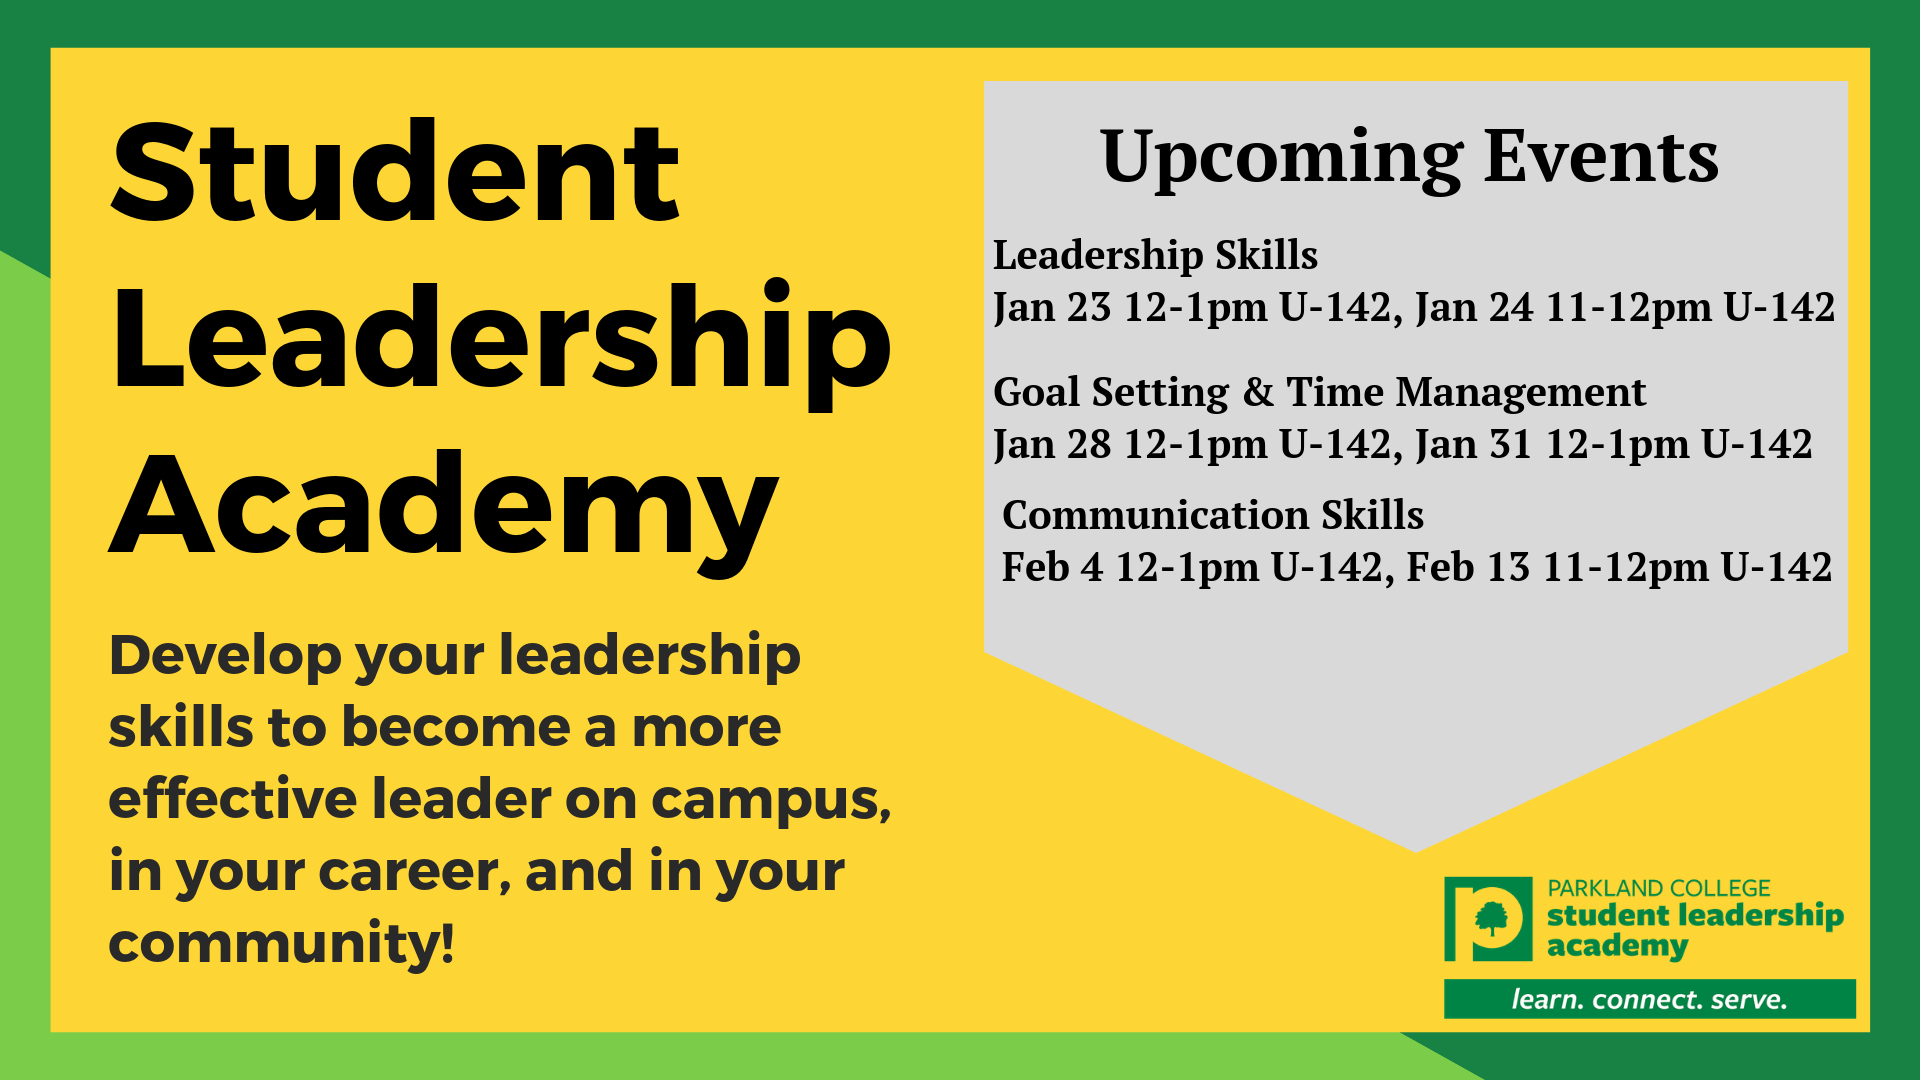 Student Leadership Academy Upcoming Events Slide (002)